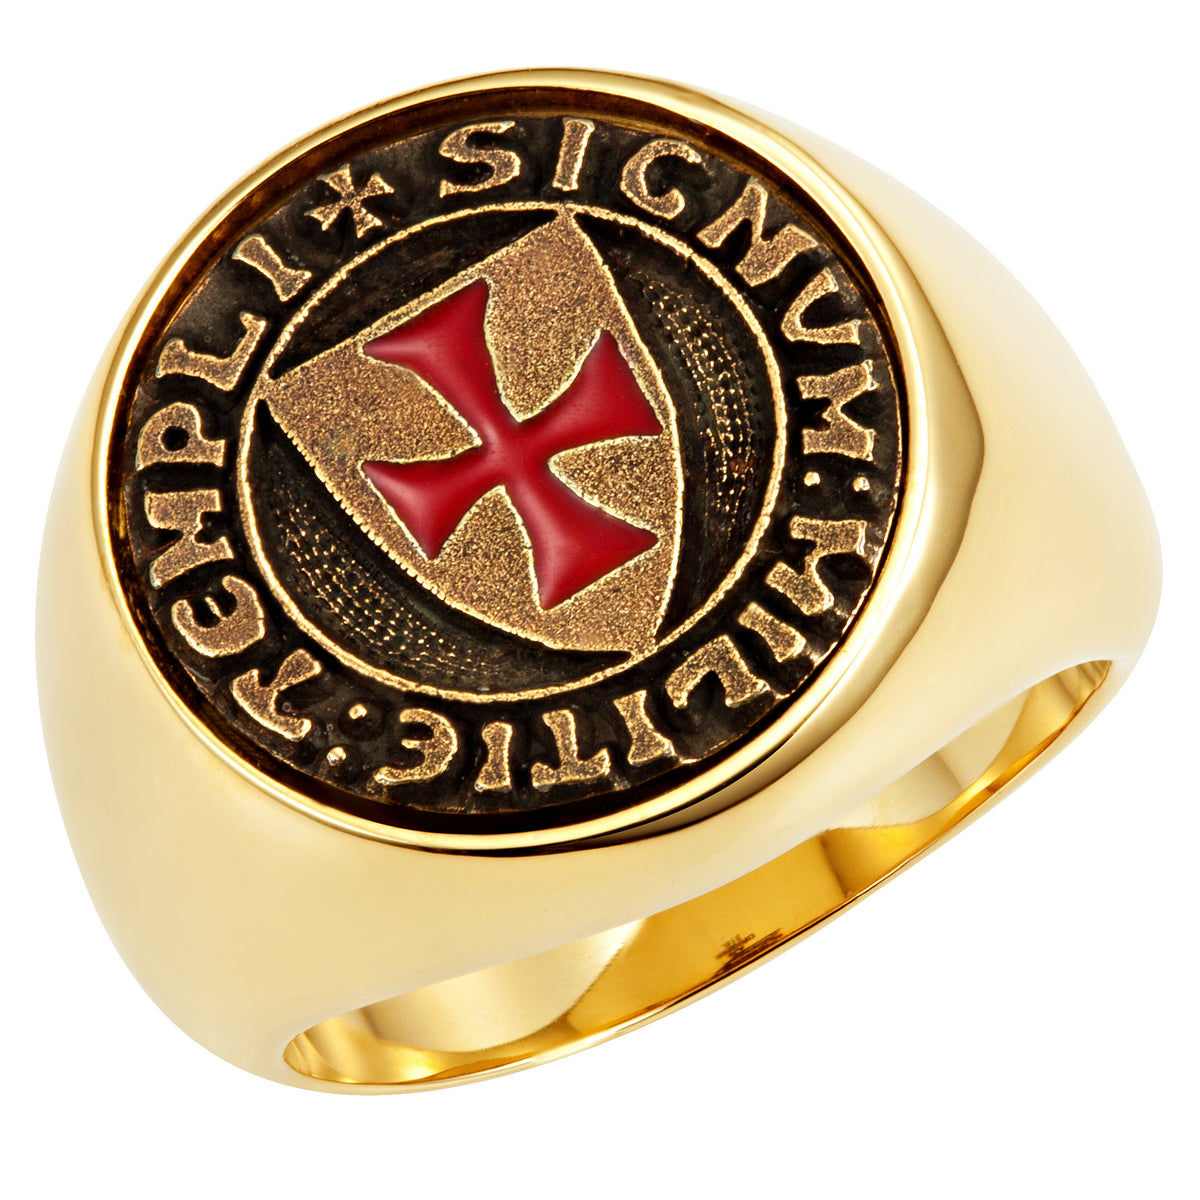 Stainless Steel Knights Templar Ring with Latin Engraving - Gold